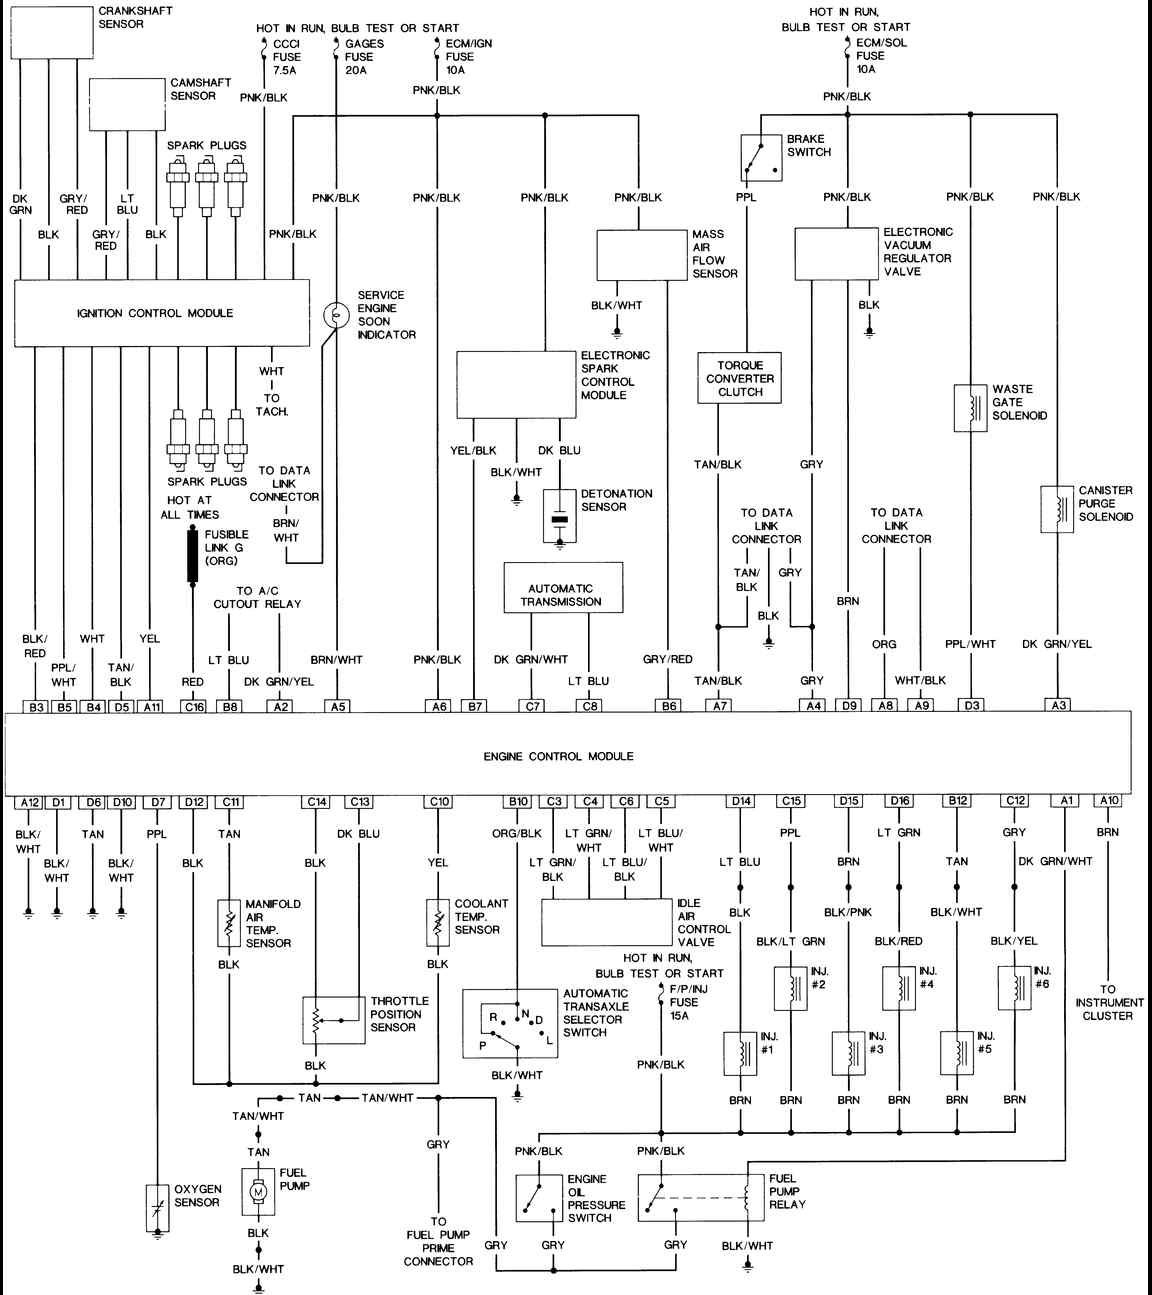 buick grand national wiring diagram buick grand national wiring harness